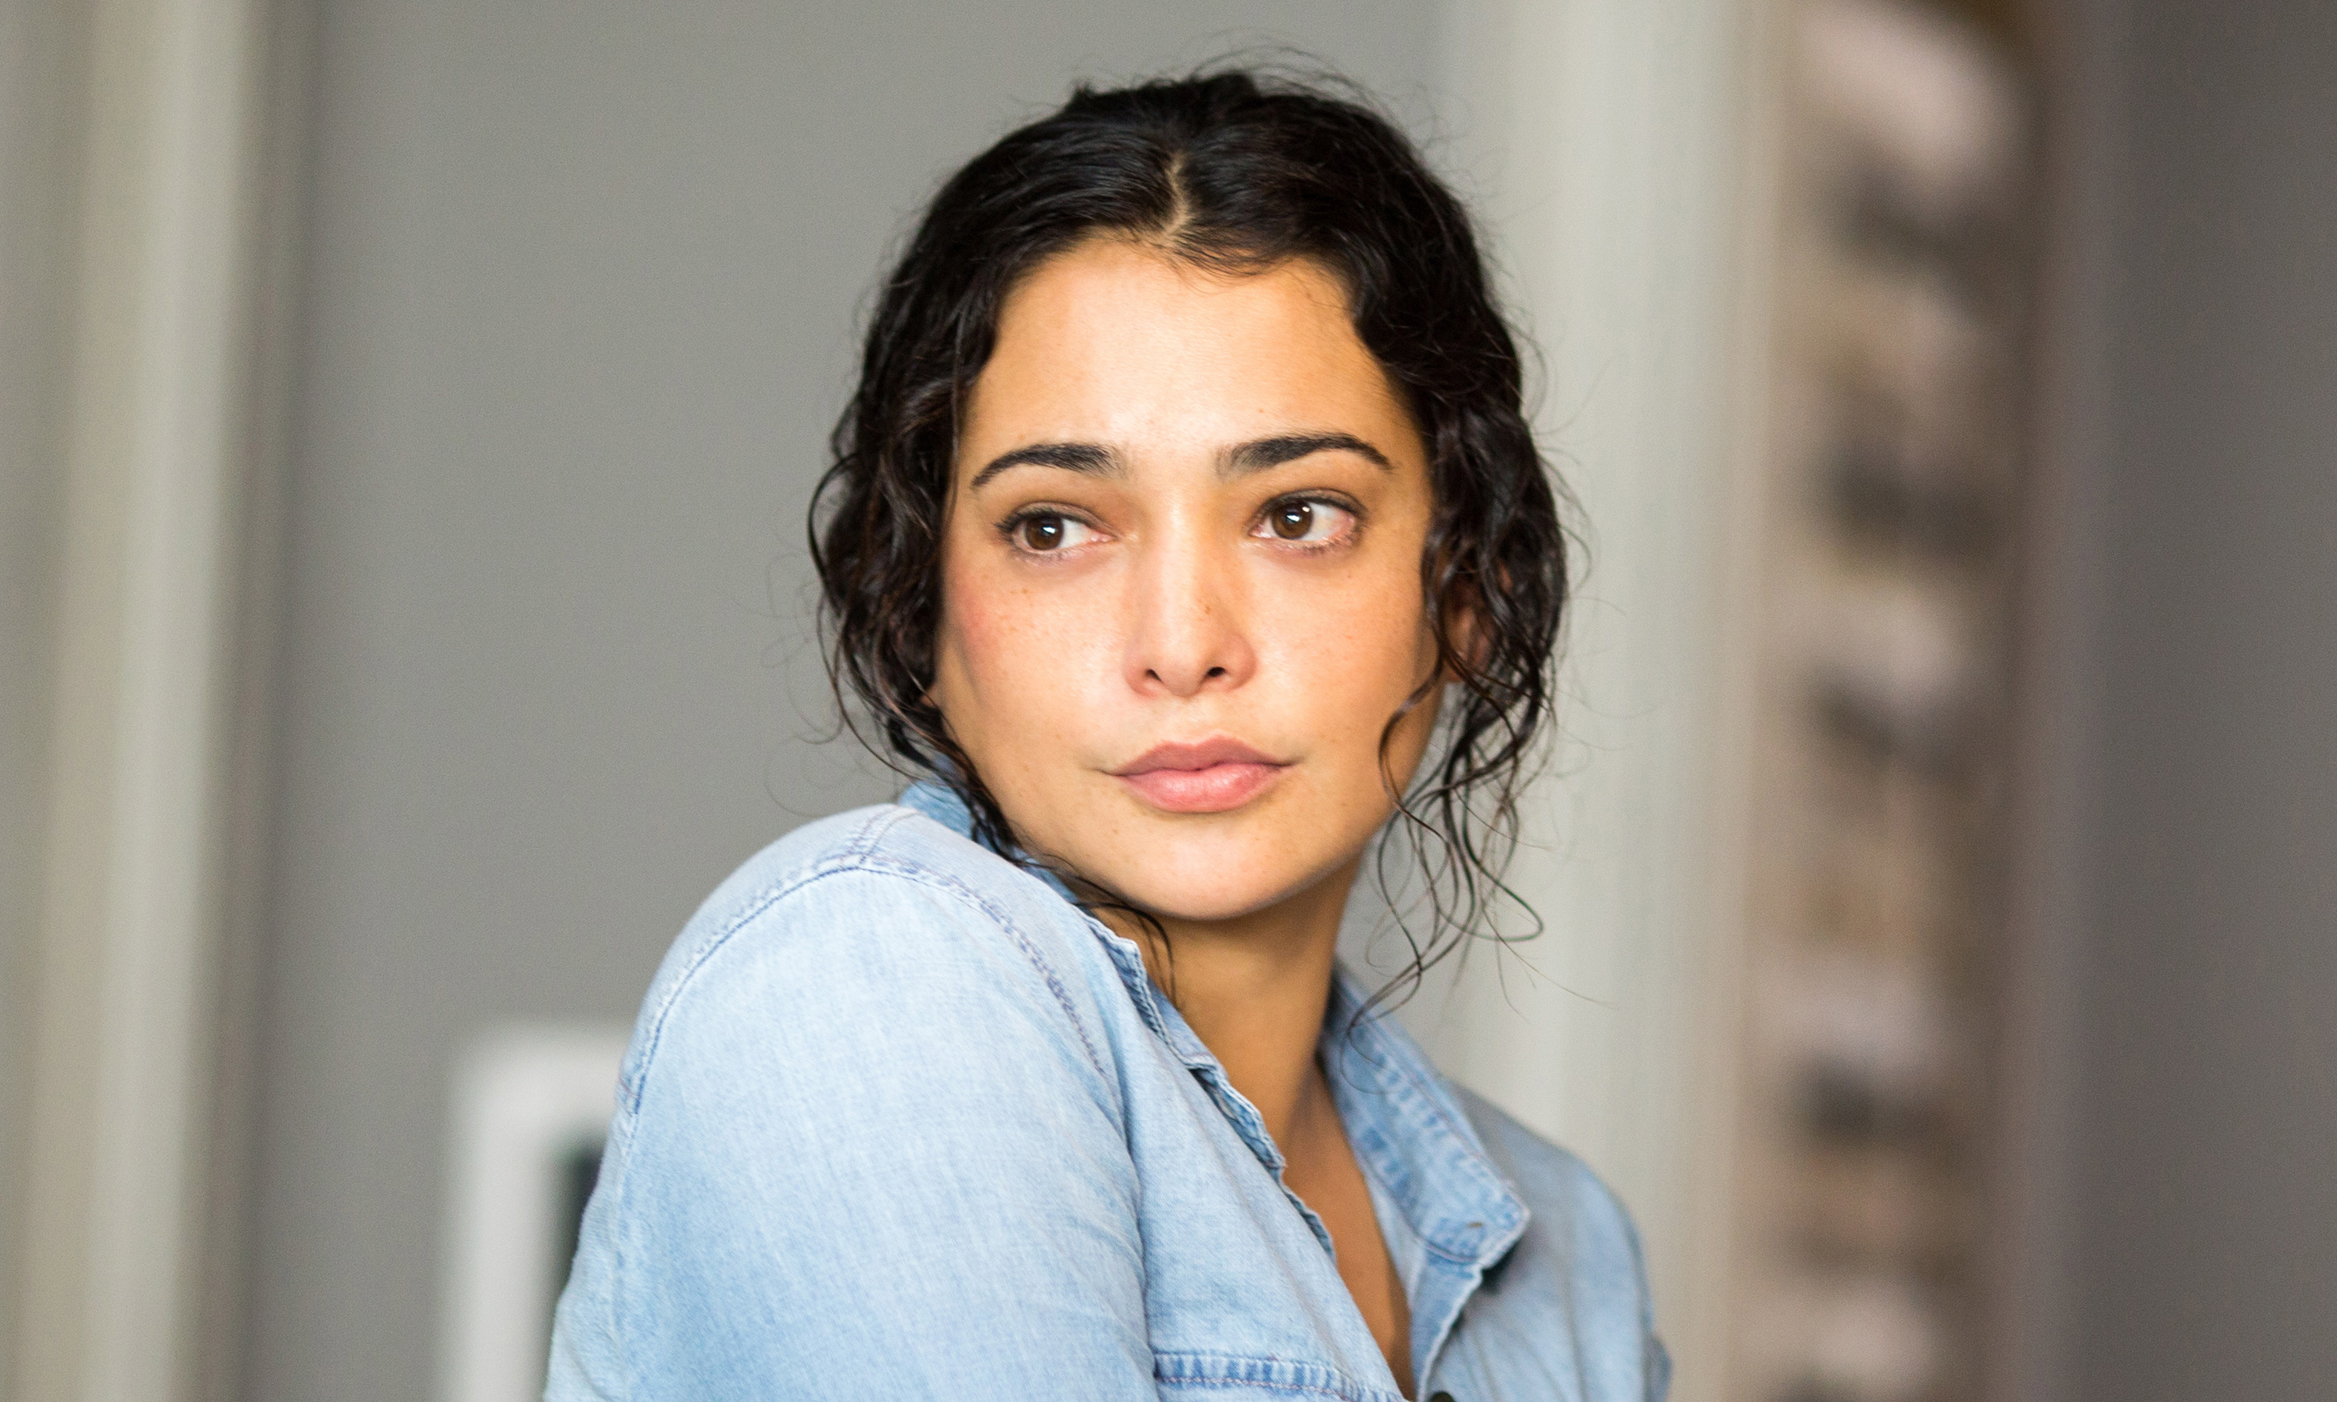 Artista Natalie Martinez Fighting For Strong Female Roles Front Row Features